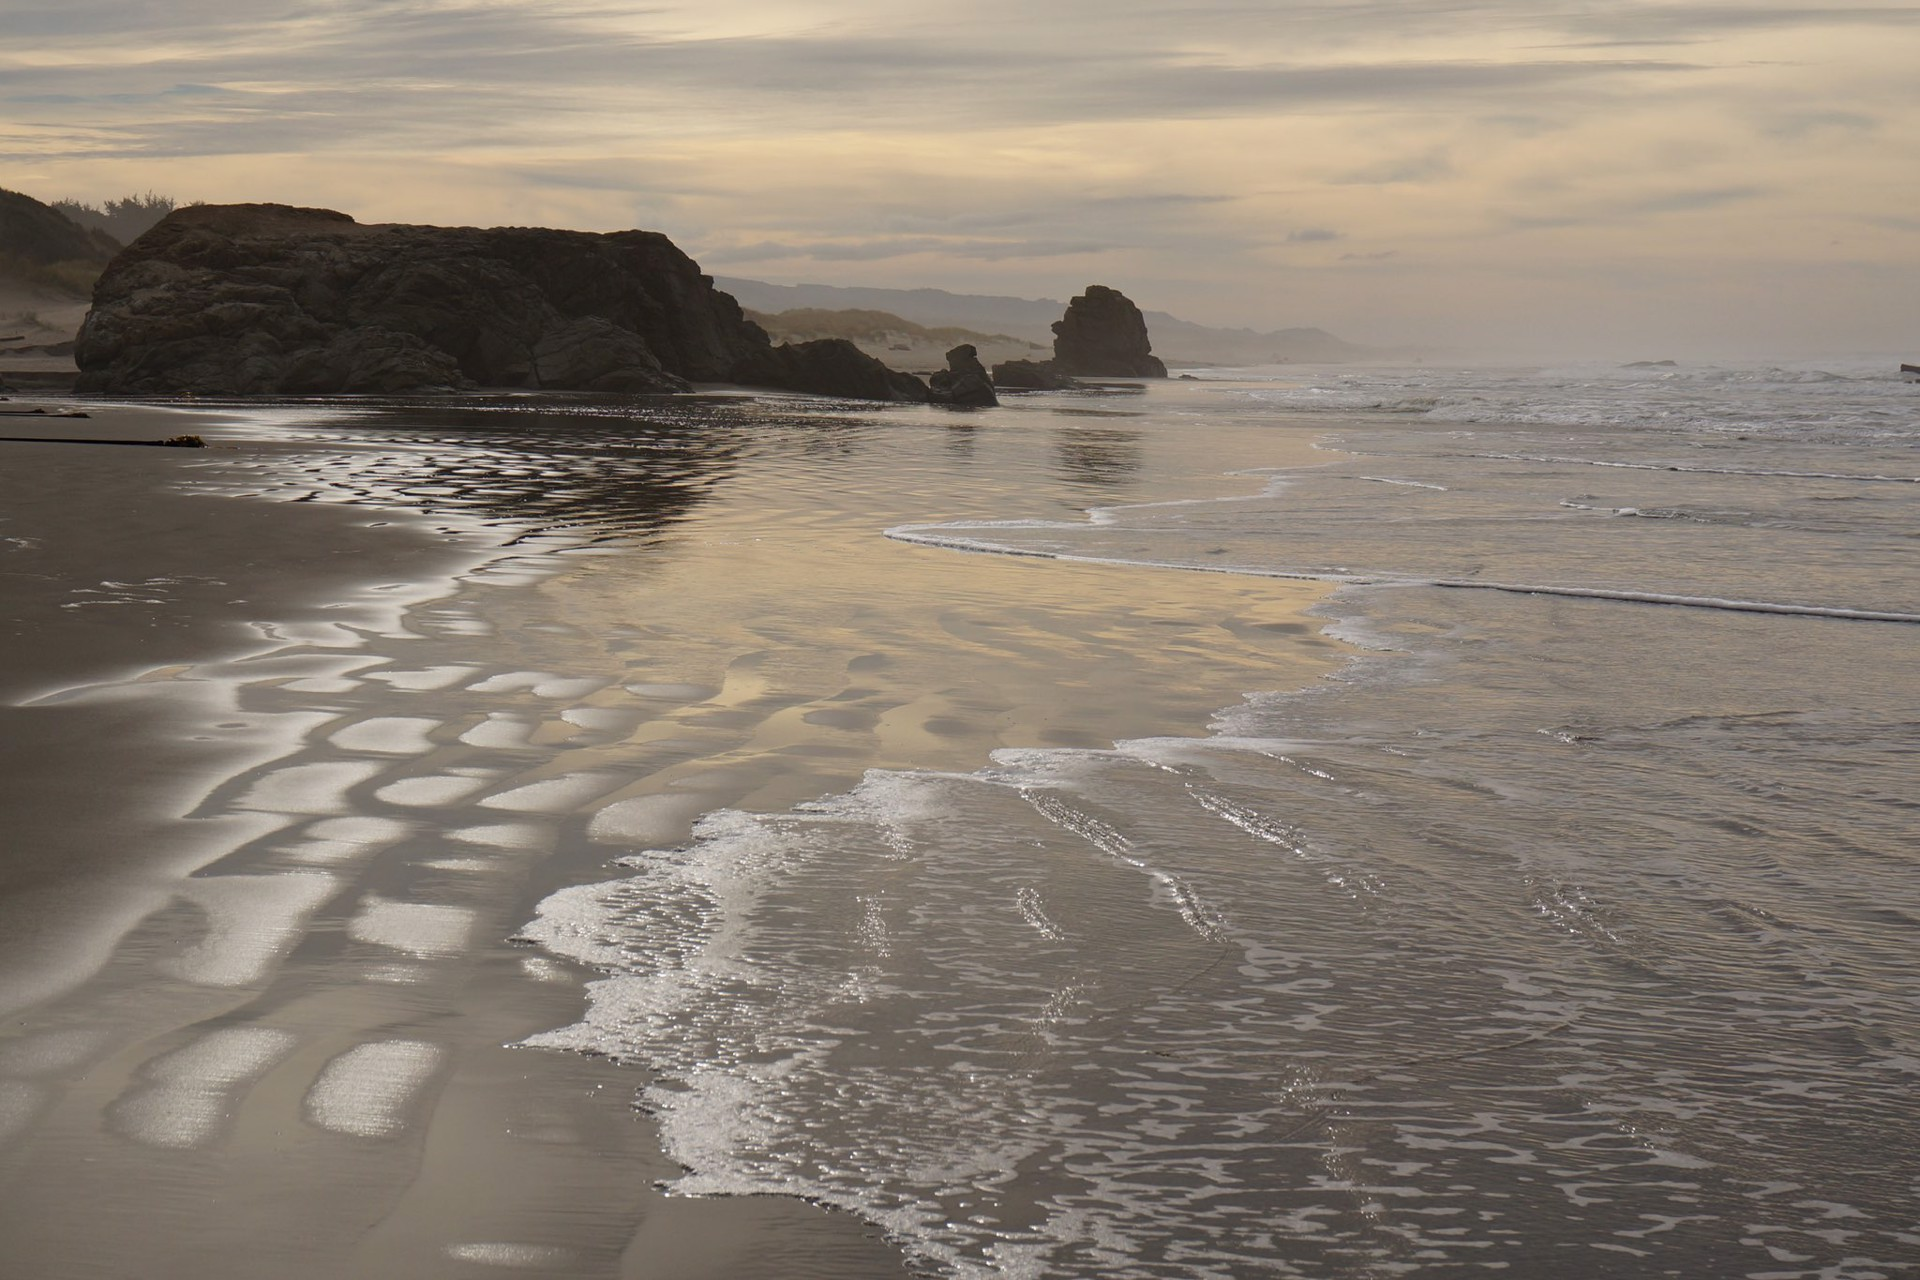 Peaceful Shore by Robin K. Hood (Coos Bay, OR)